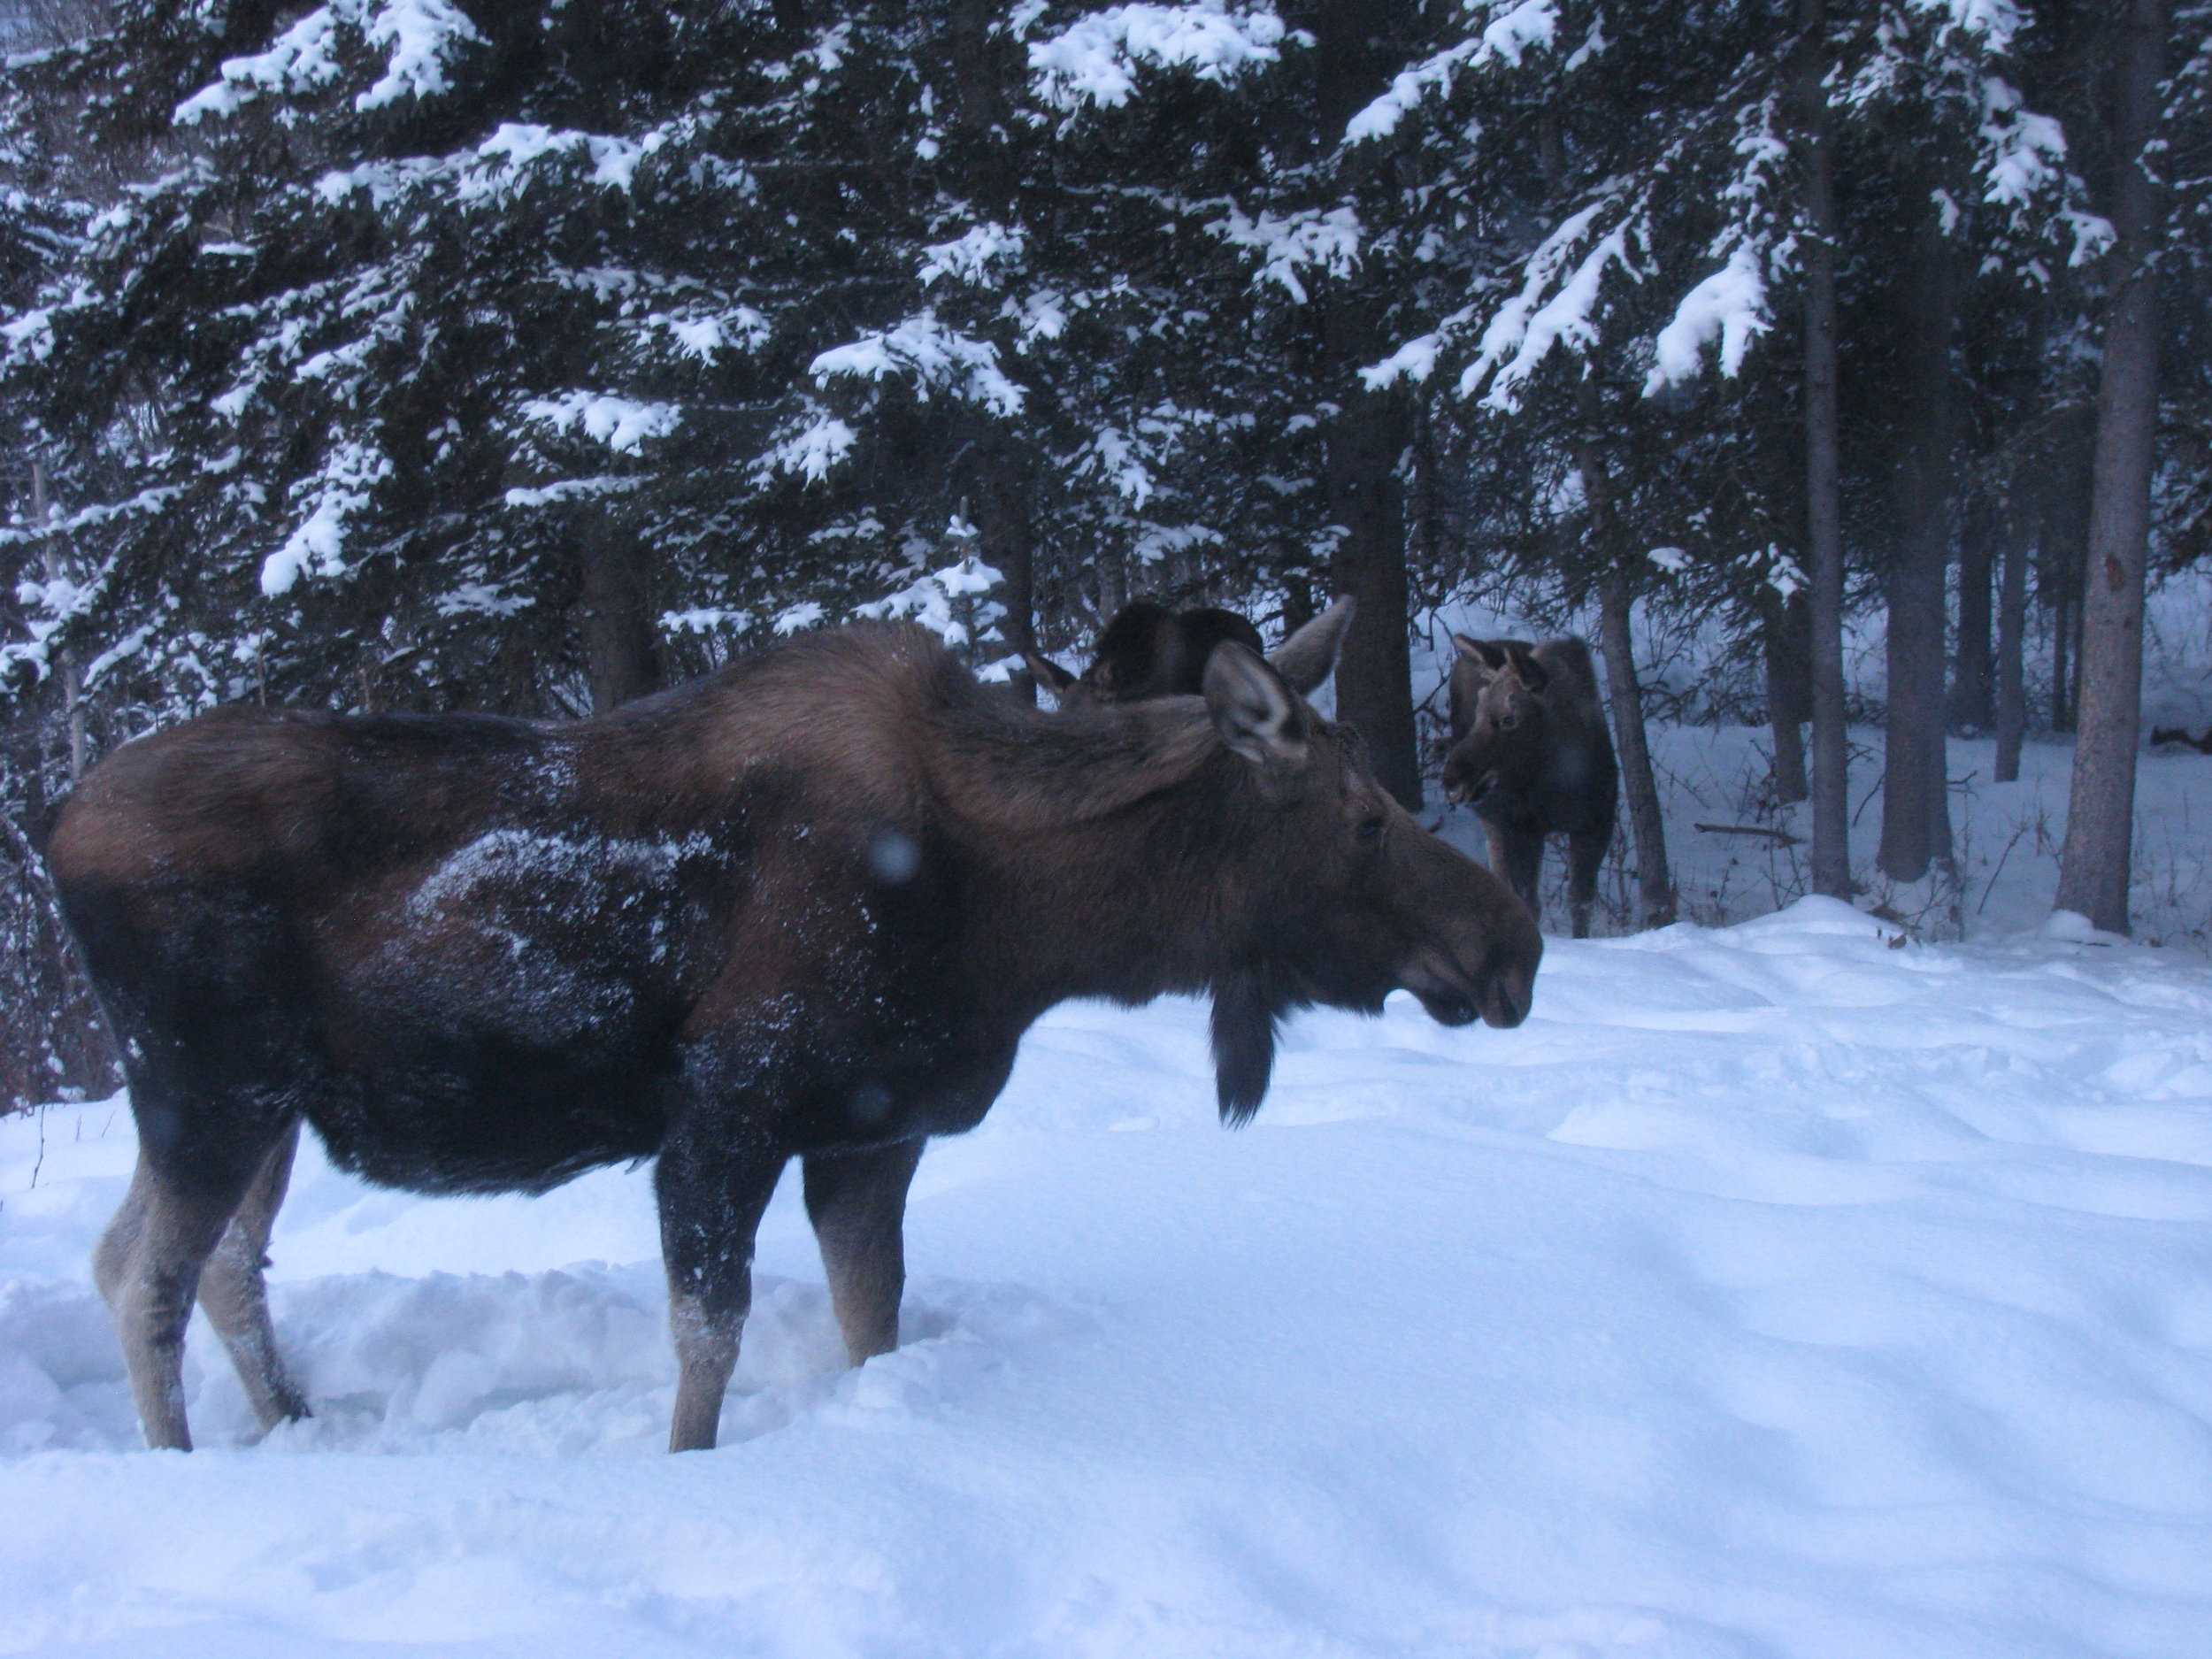 Cow moose and calves come to visit.